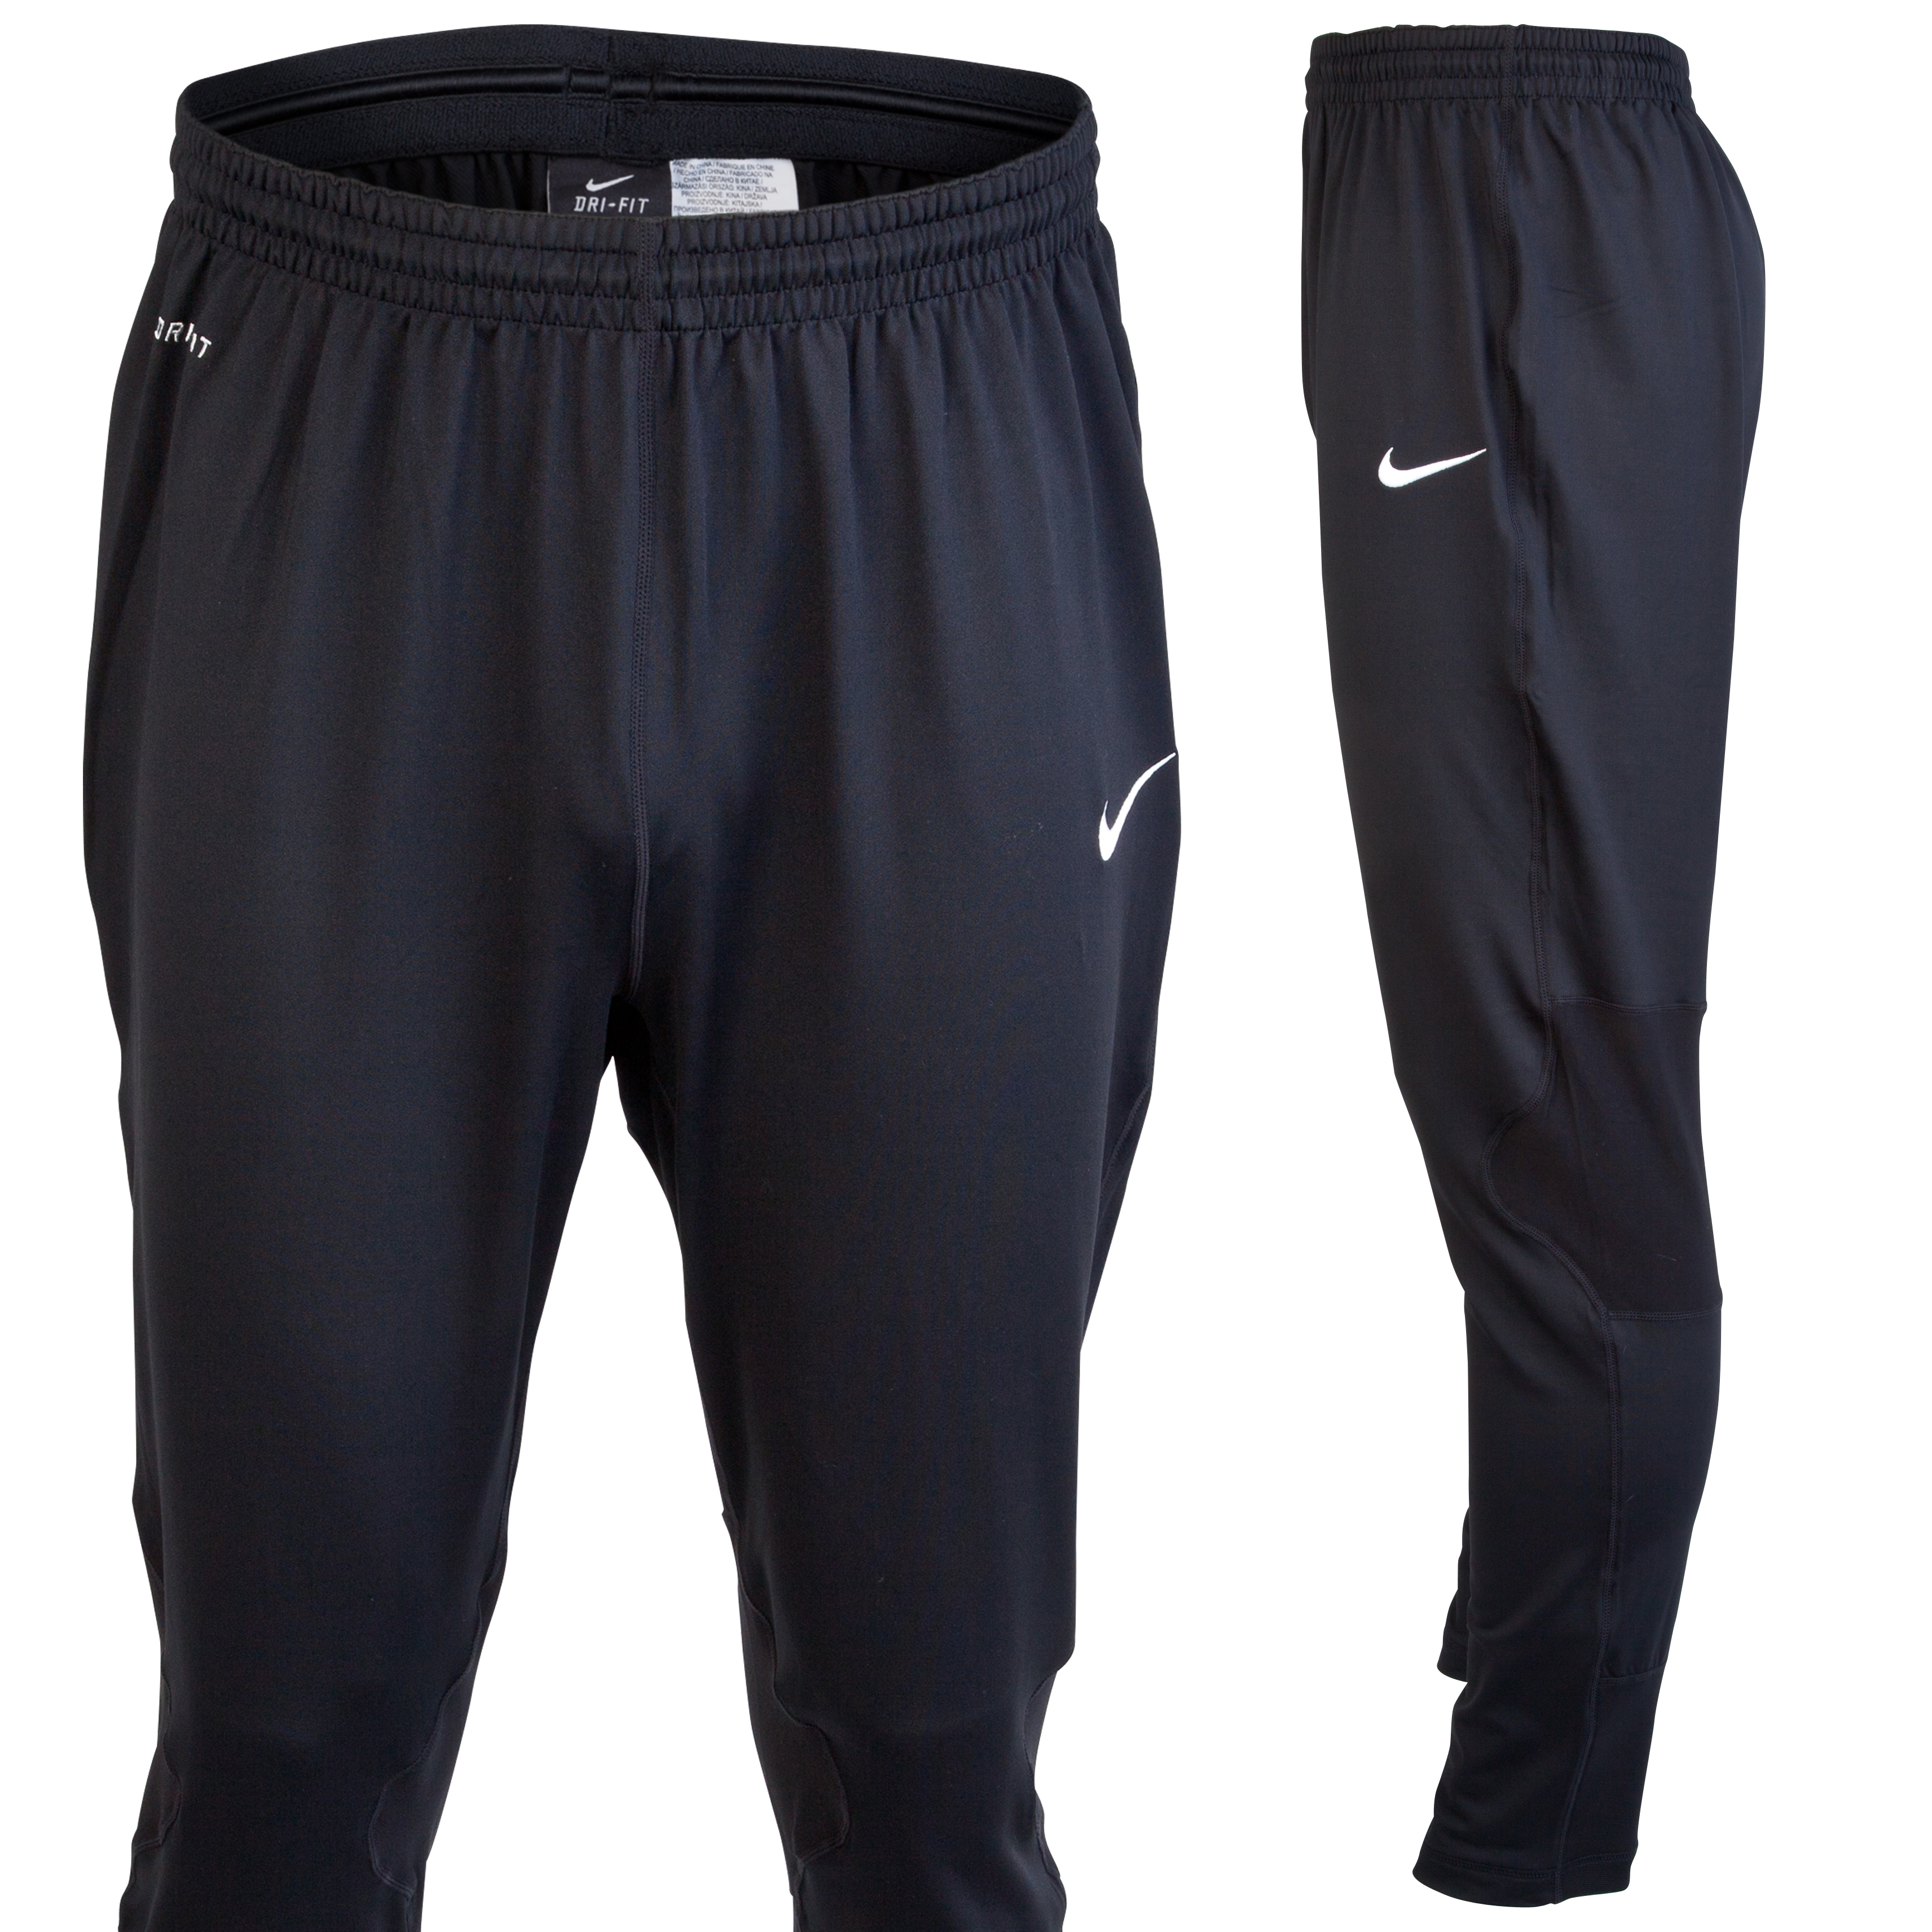 Nike Elite Tech Knit Training Pant - Black/White